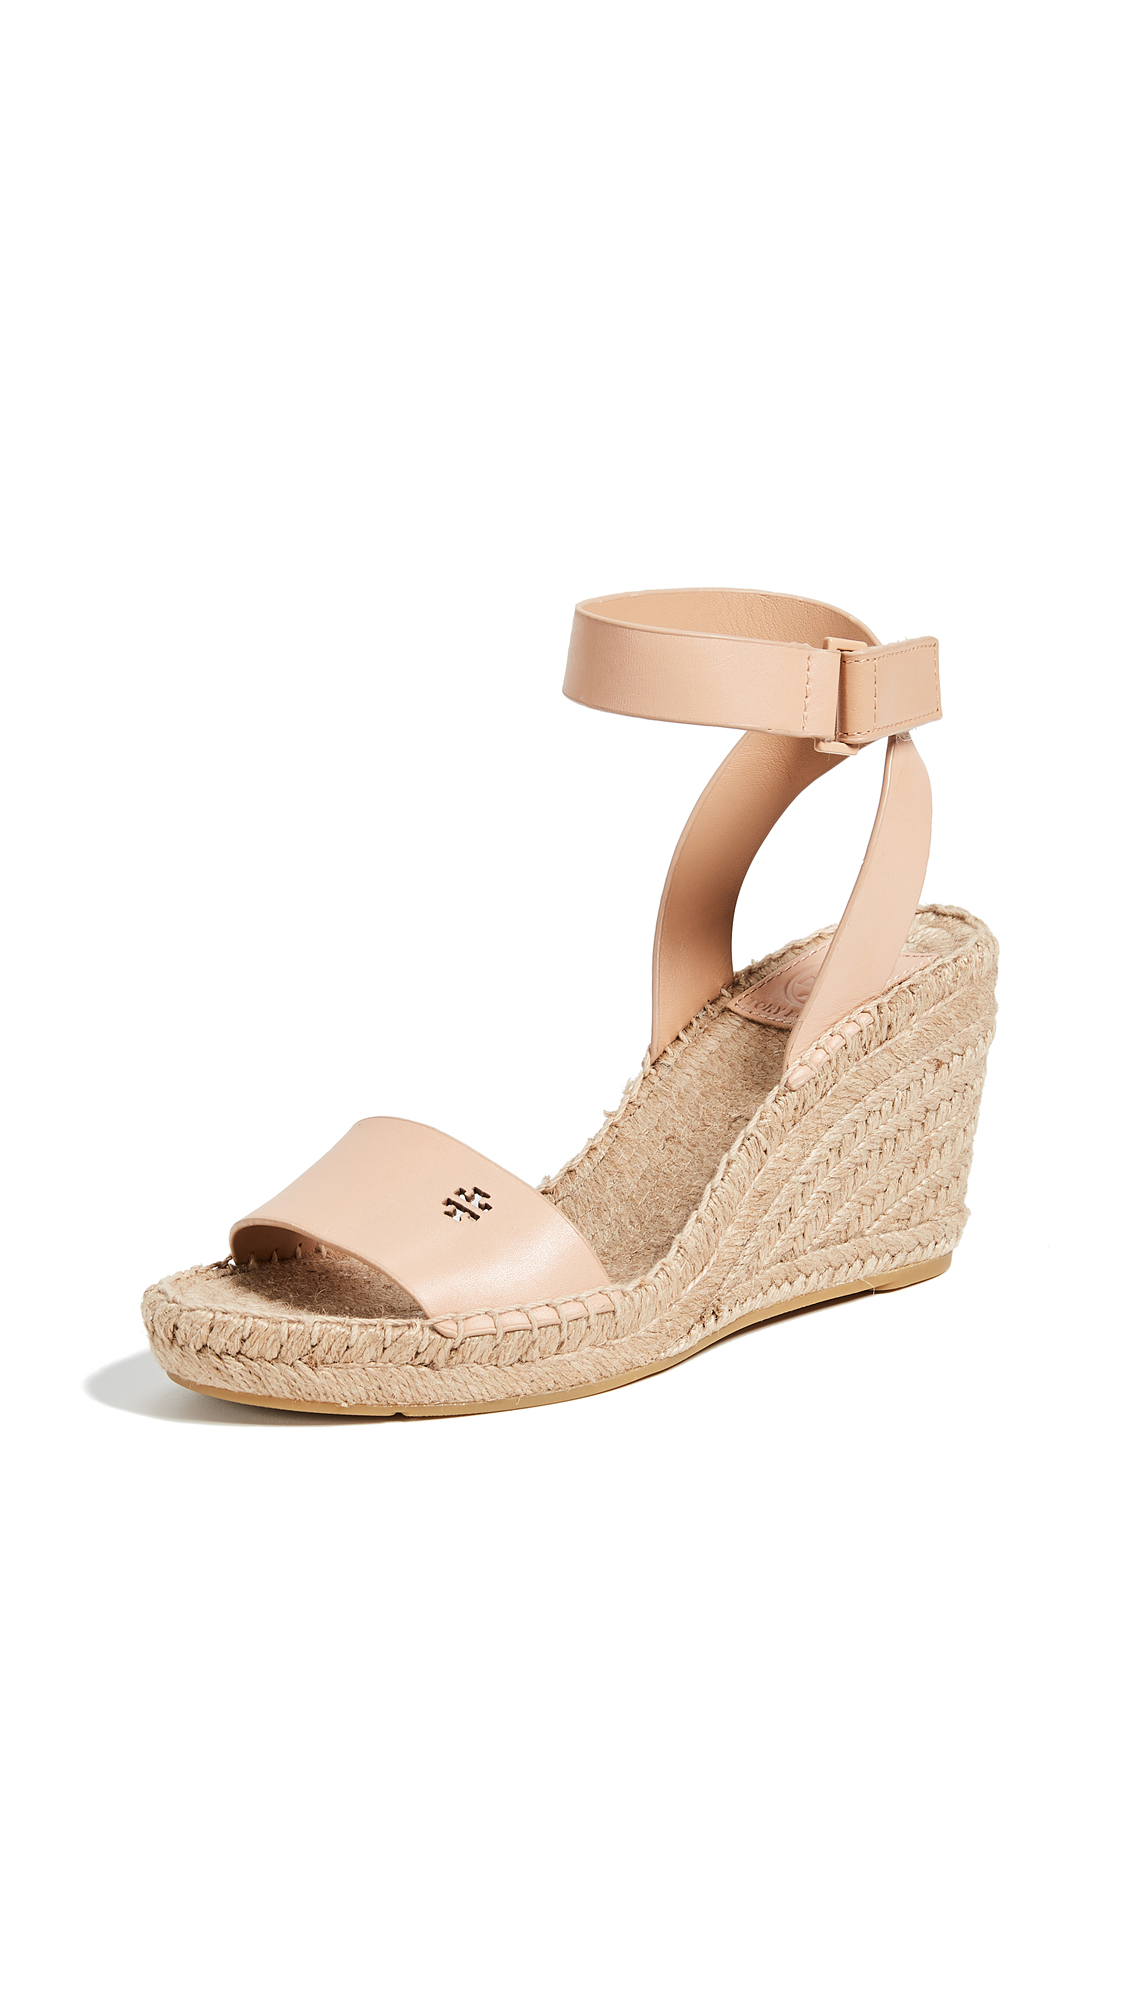 Tory Burch Bima 2 90mm Wedge Espadrilles - Natural